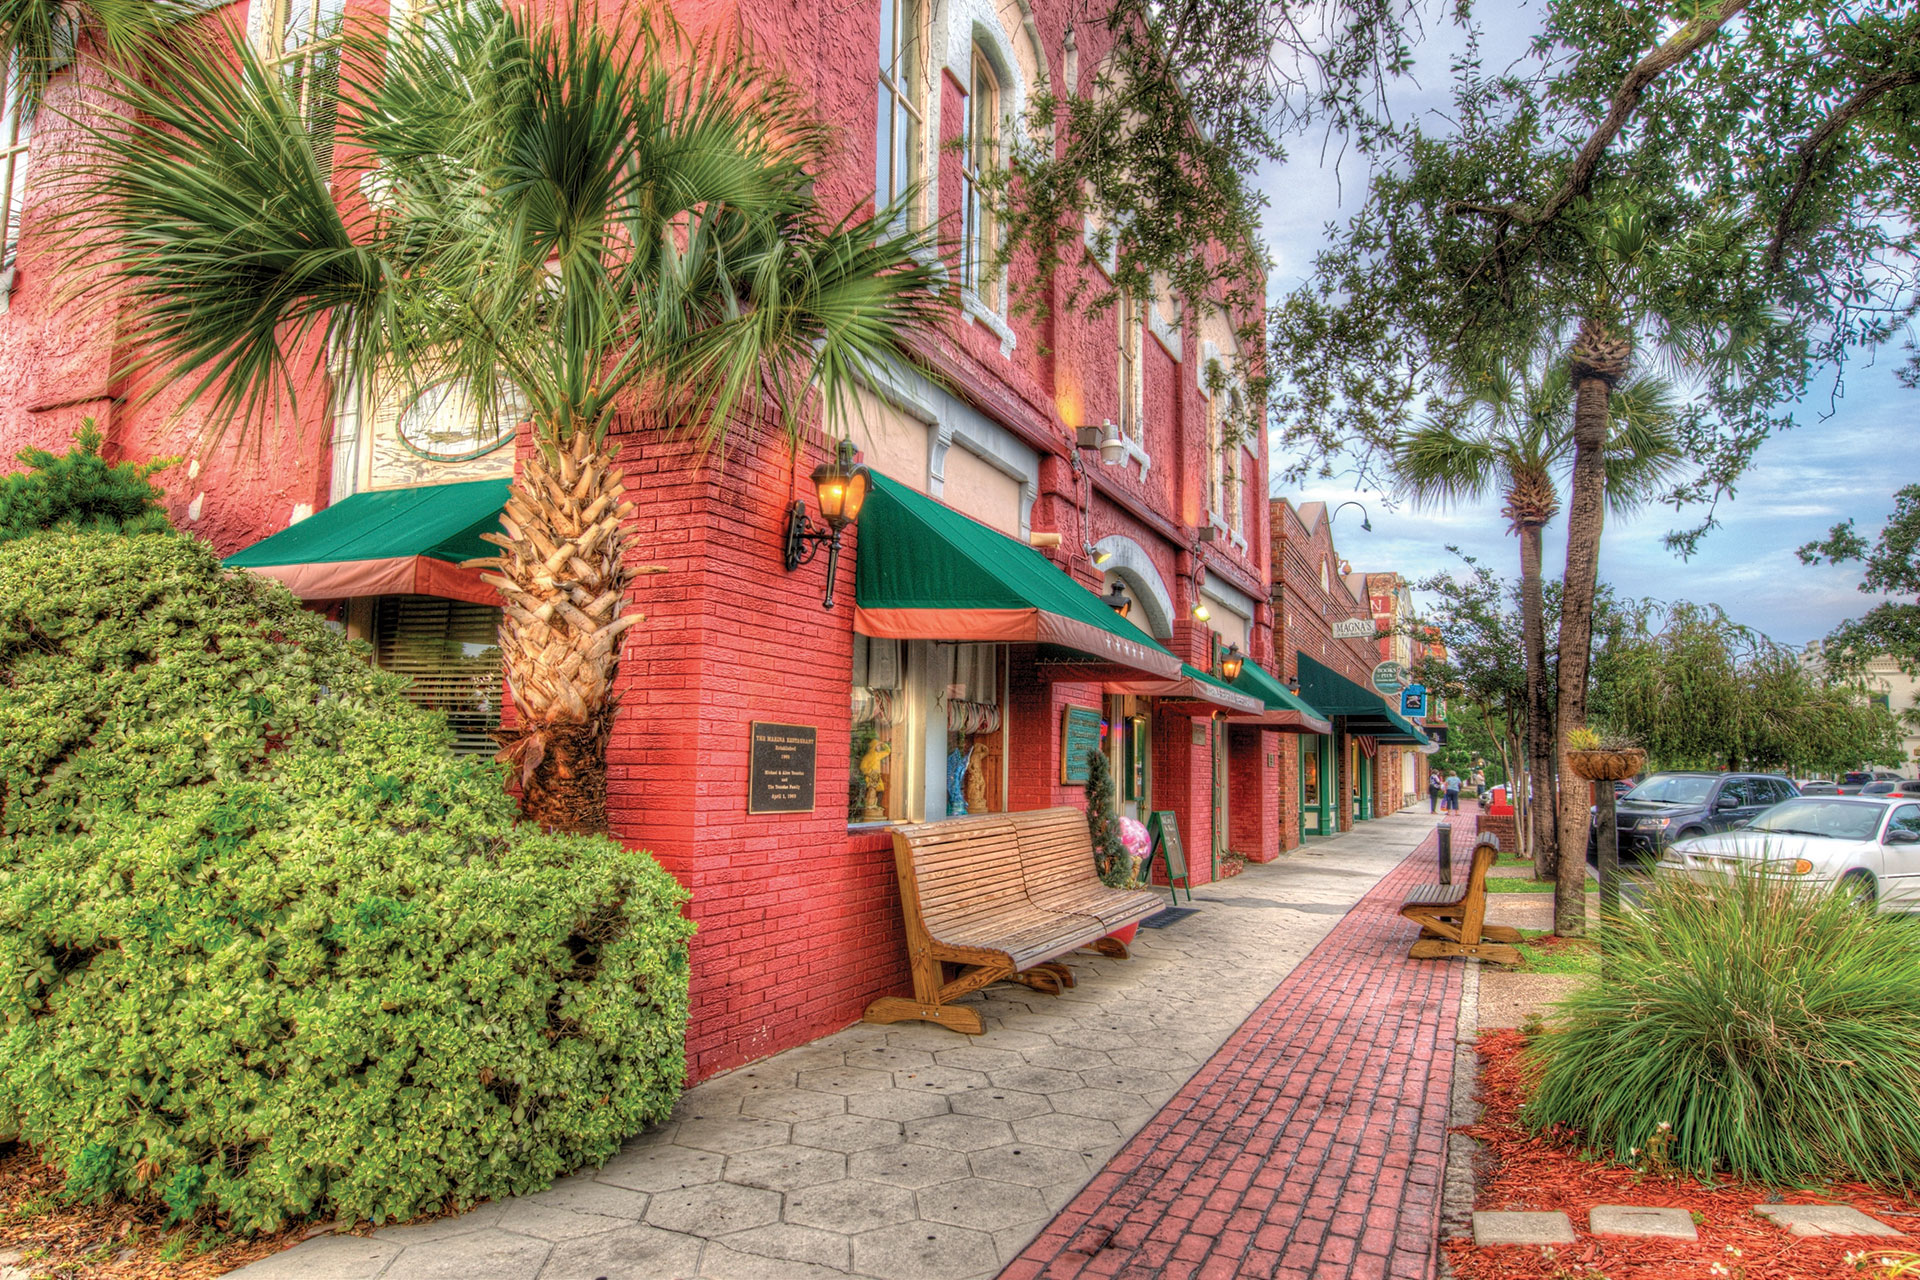 Downtown Amelia Island; Courtesy of Amelia Island Convention and Visitors Bureau